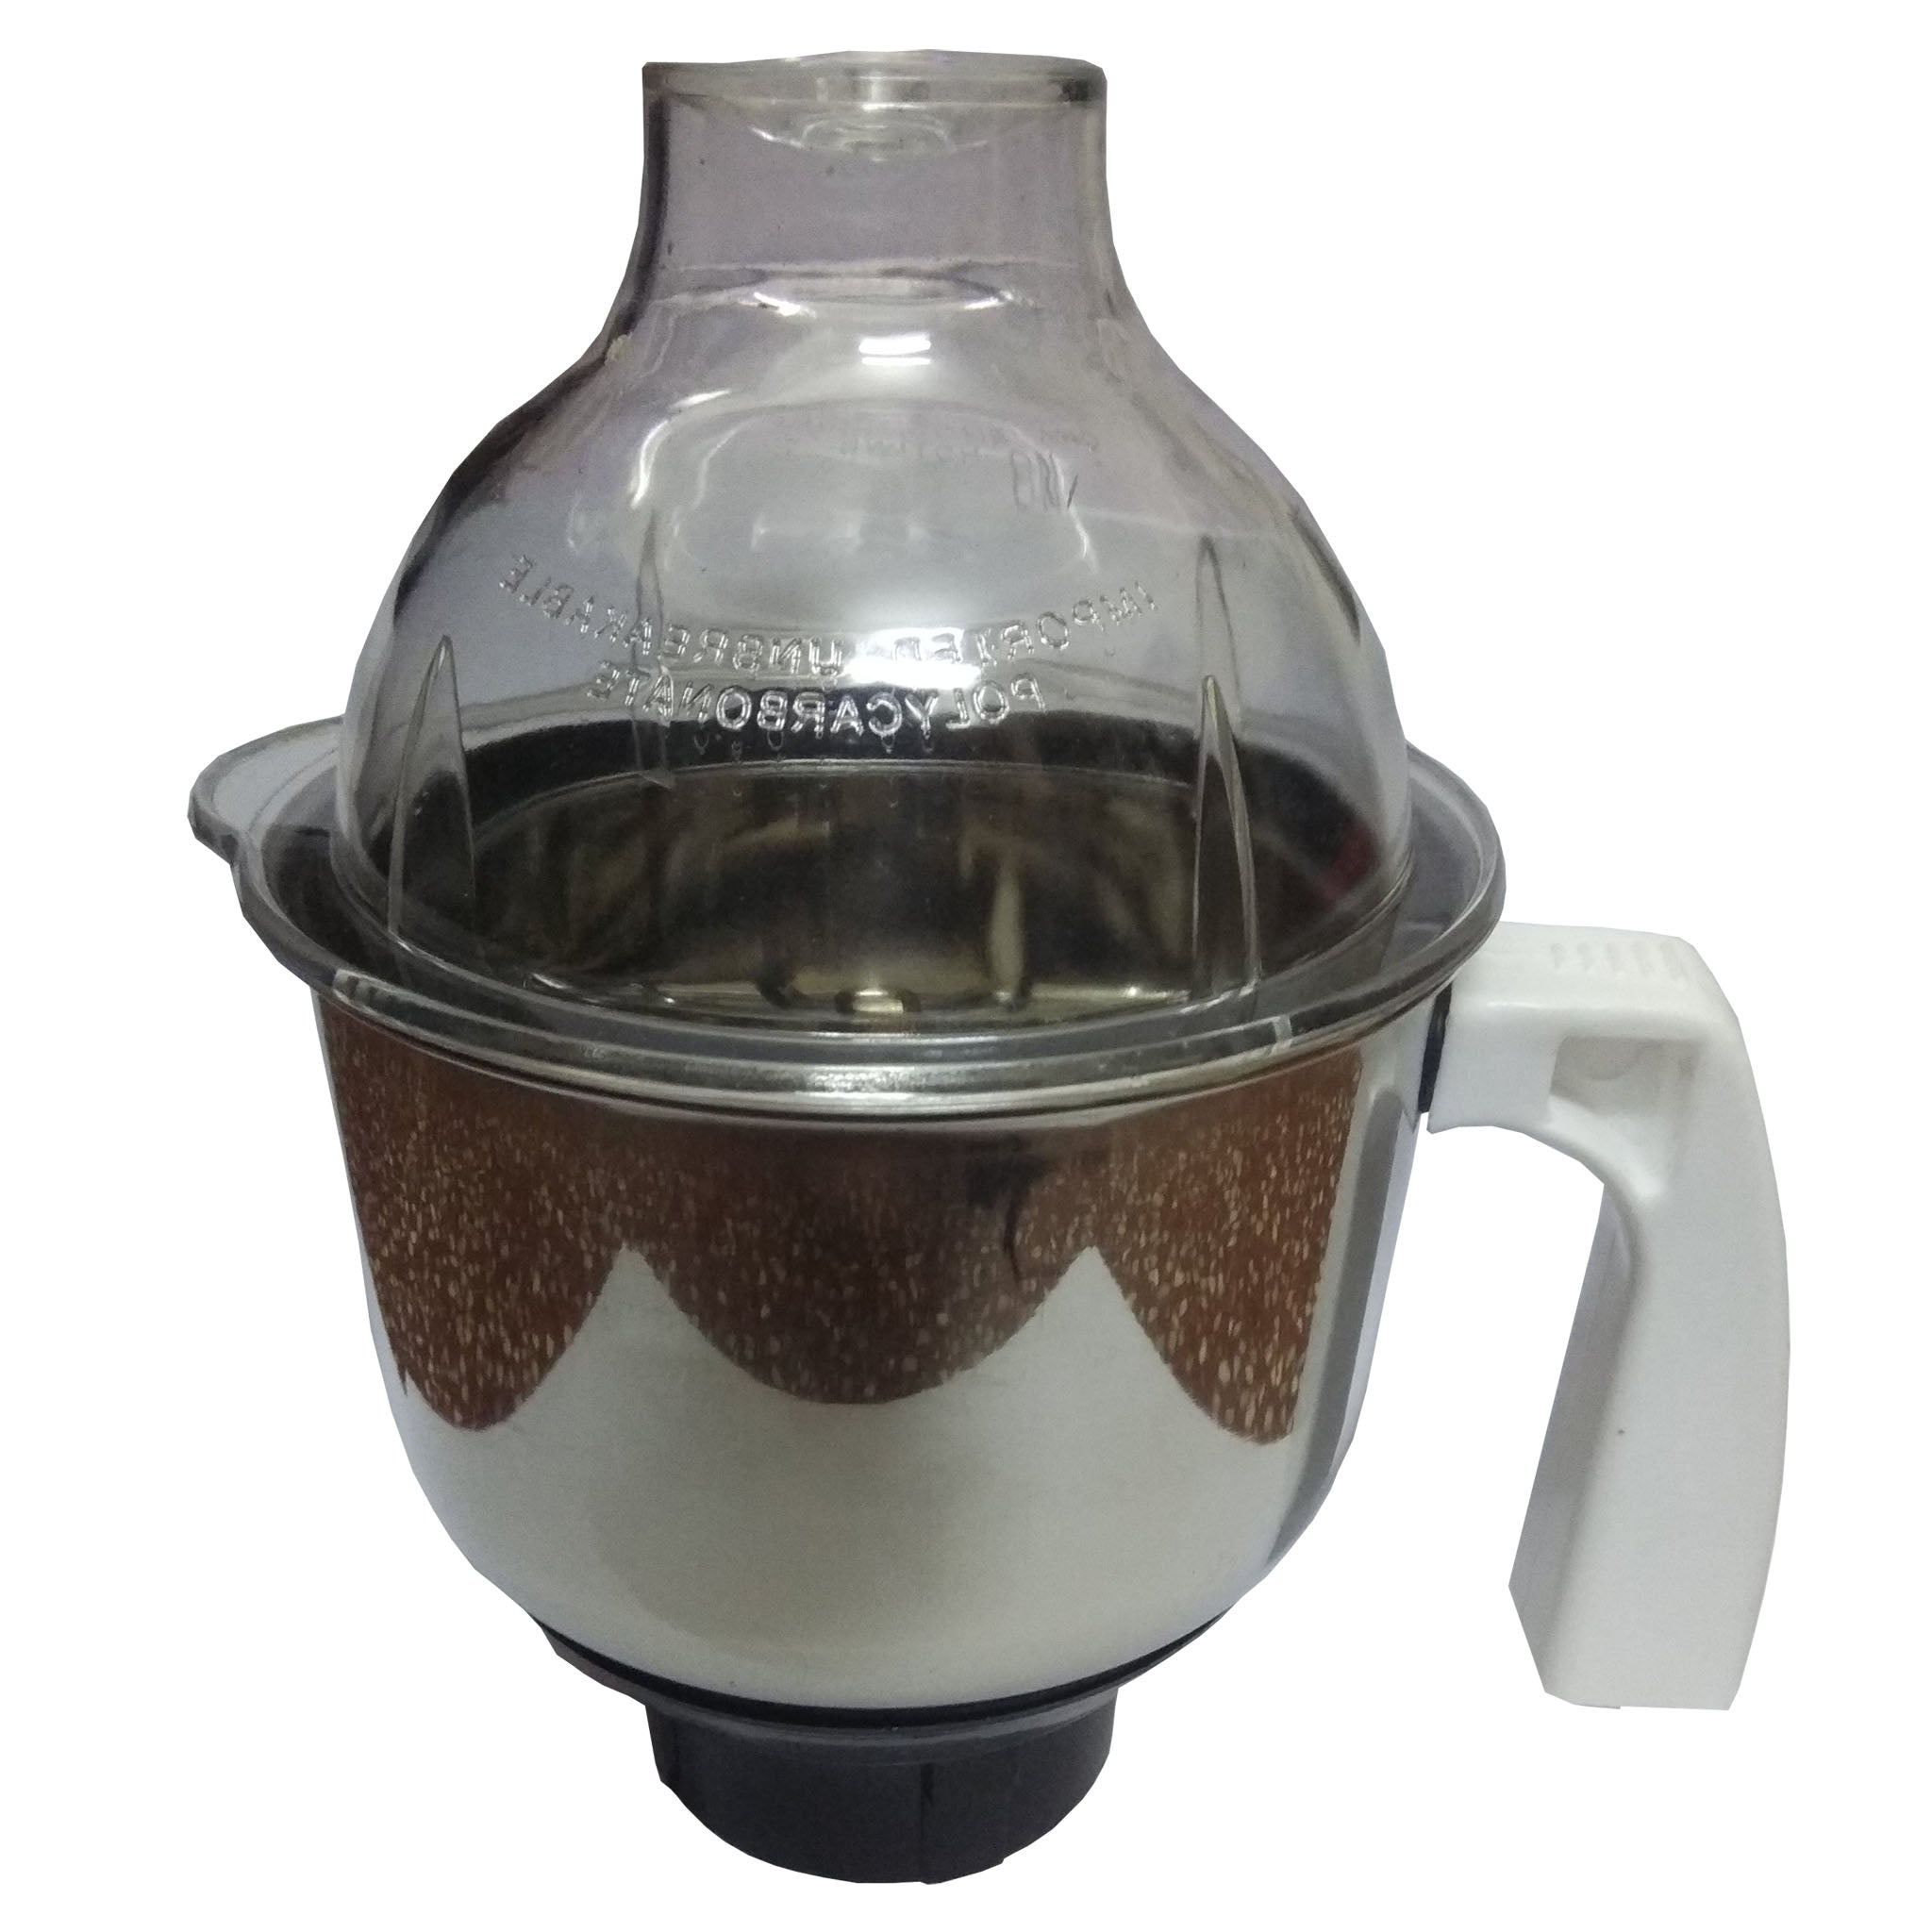 Preethi Big Grinder / Mixer Jar Stainless Steel (1000 ml)